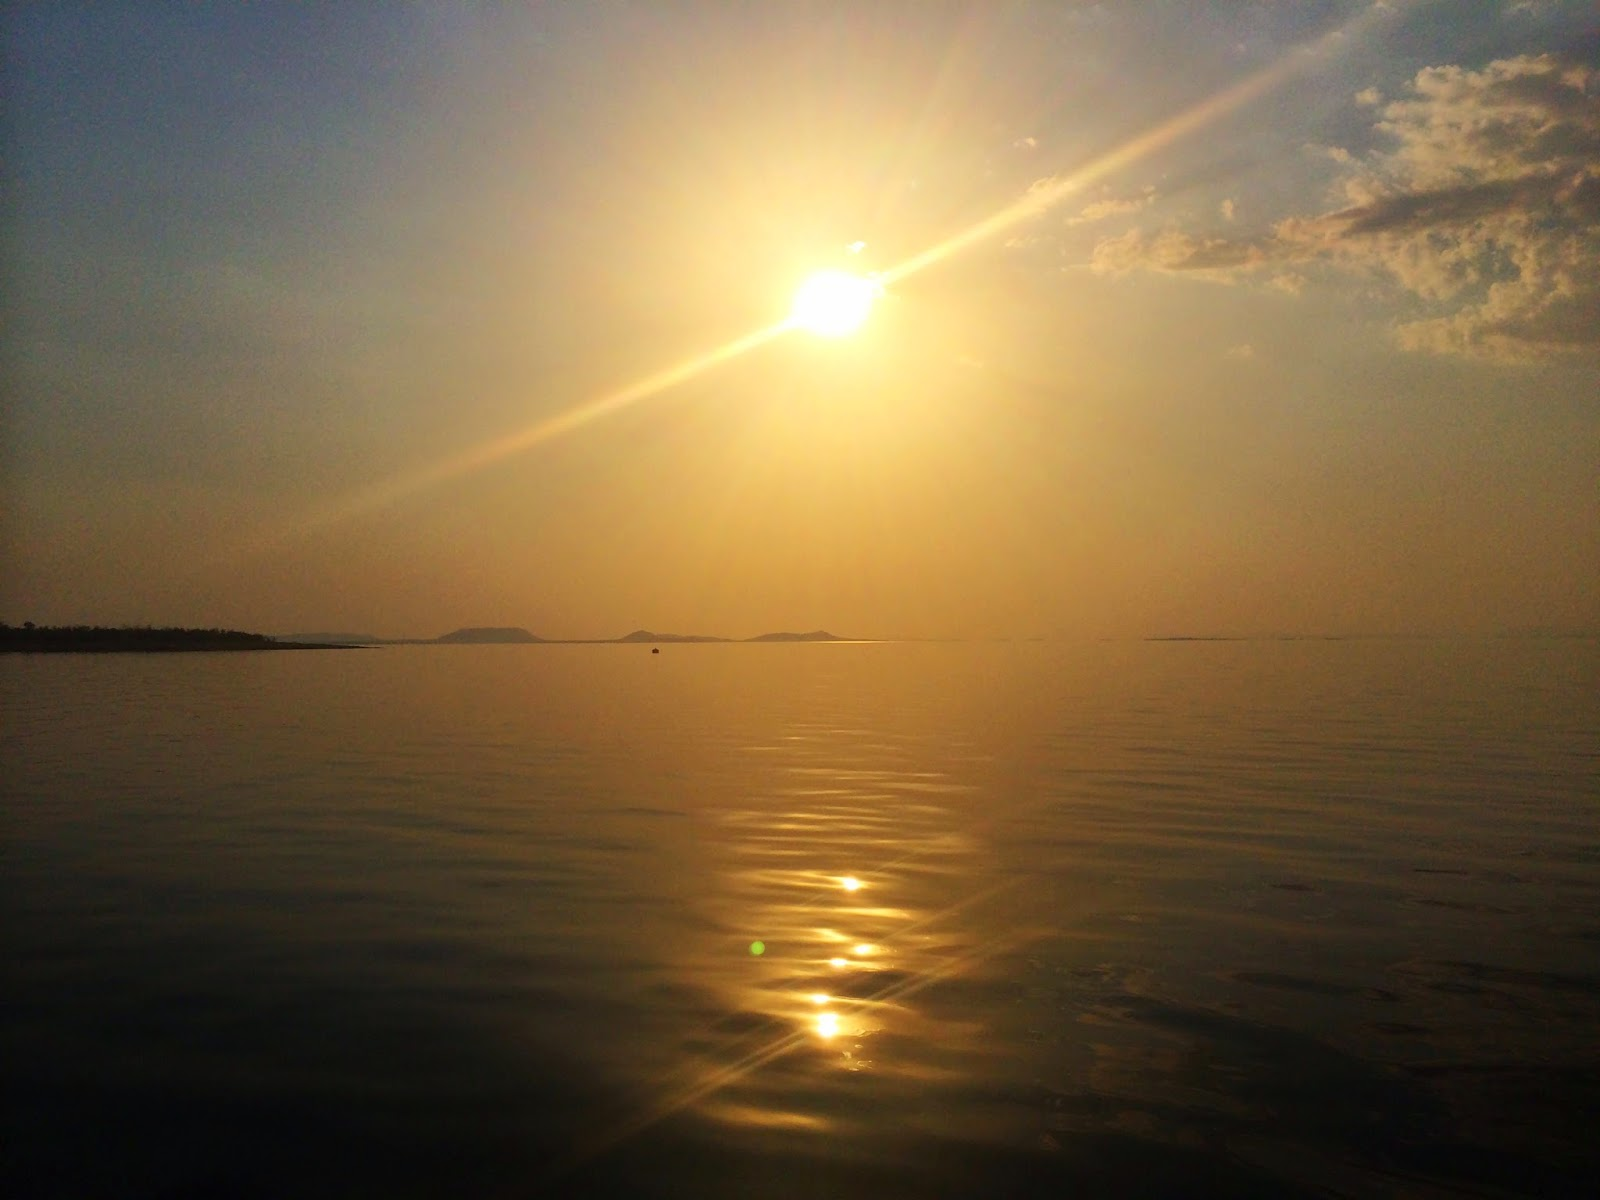 Yet another stunning sunset over Lake Kariba